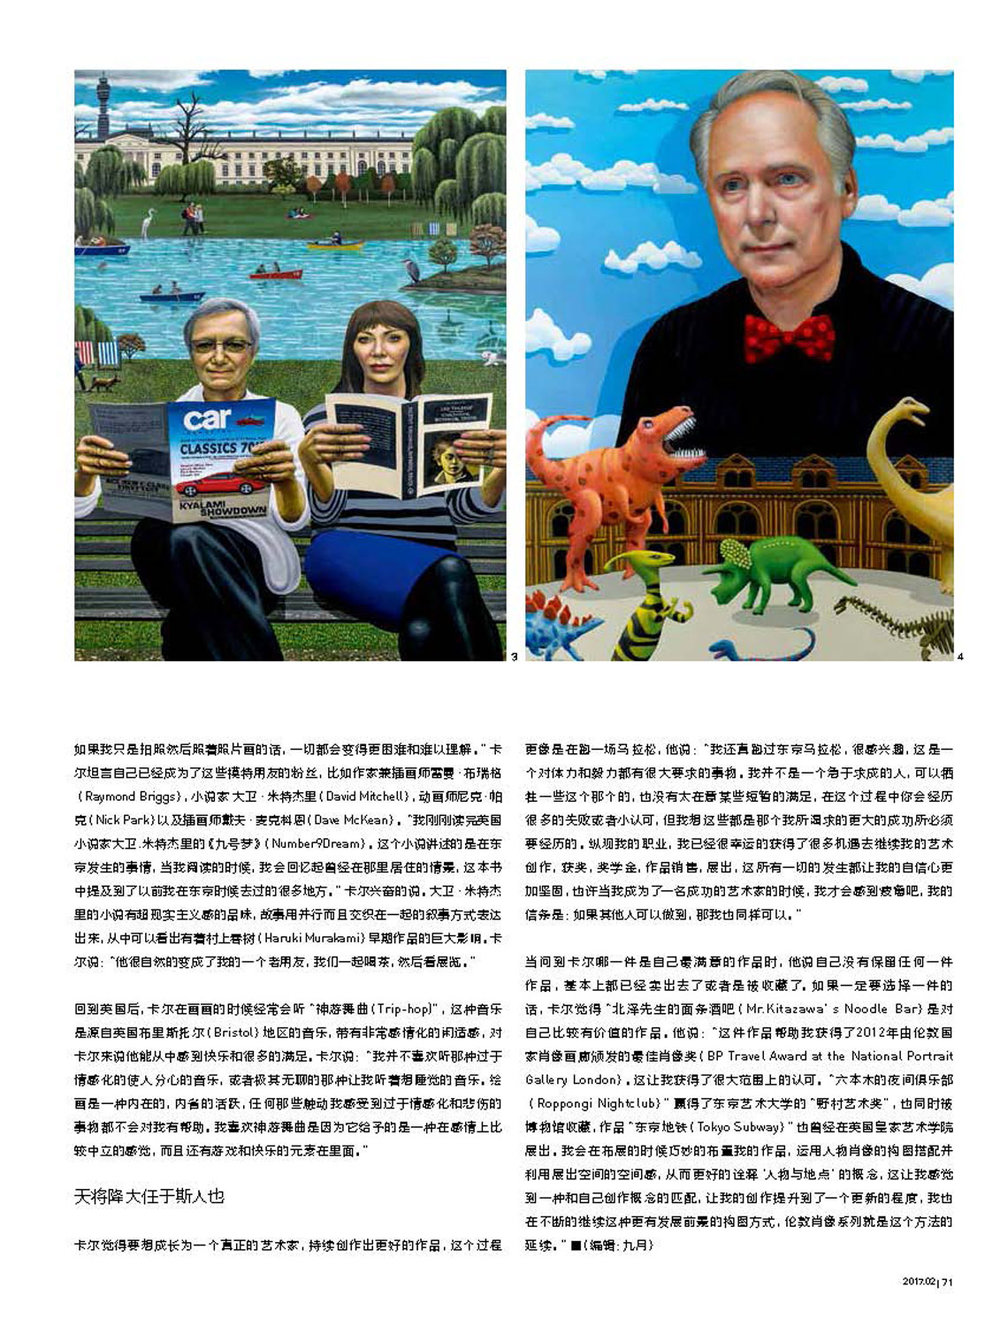 carl-randall---china-magazine-6.jpg